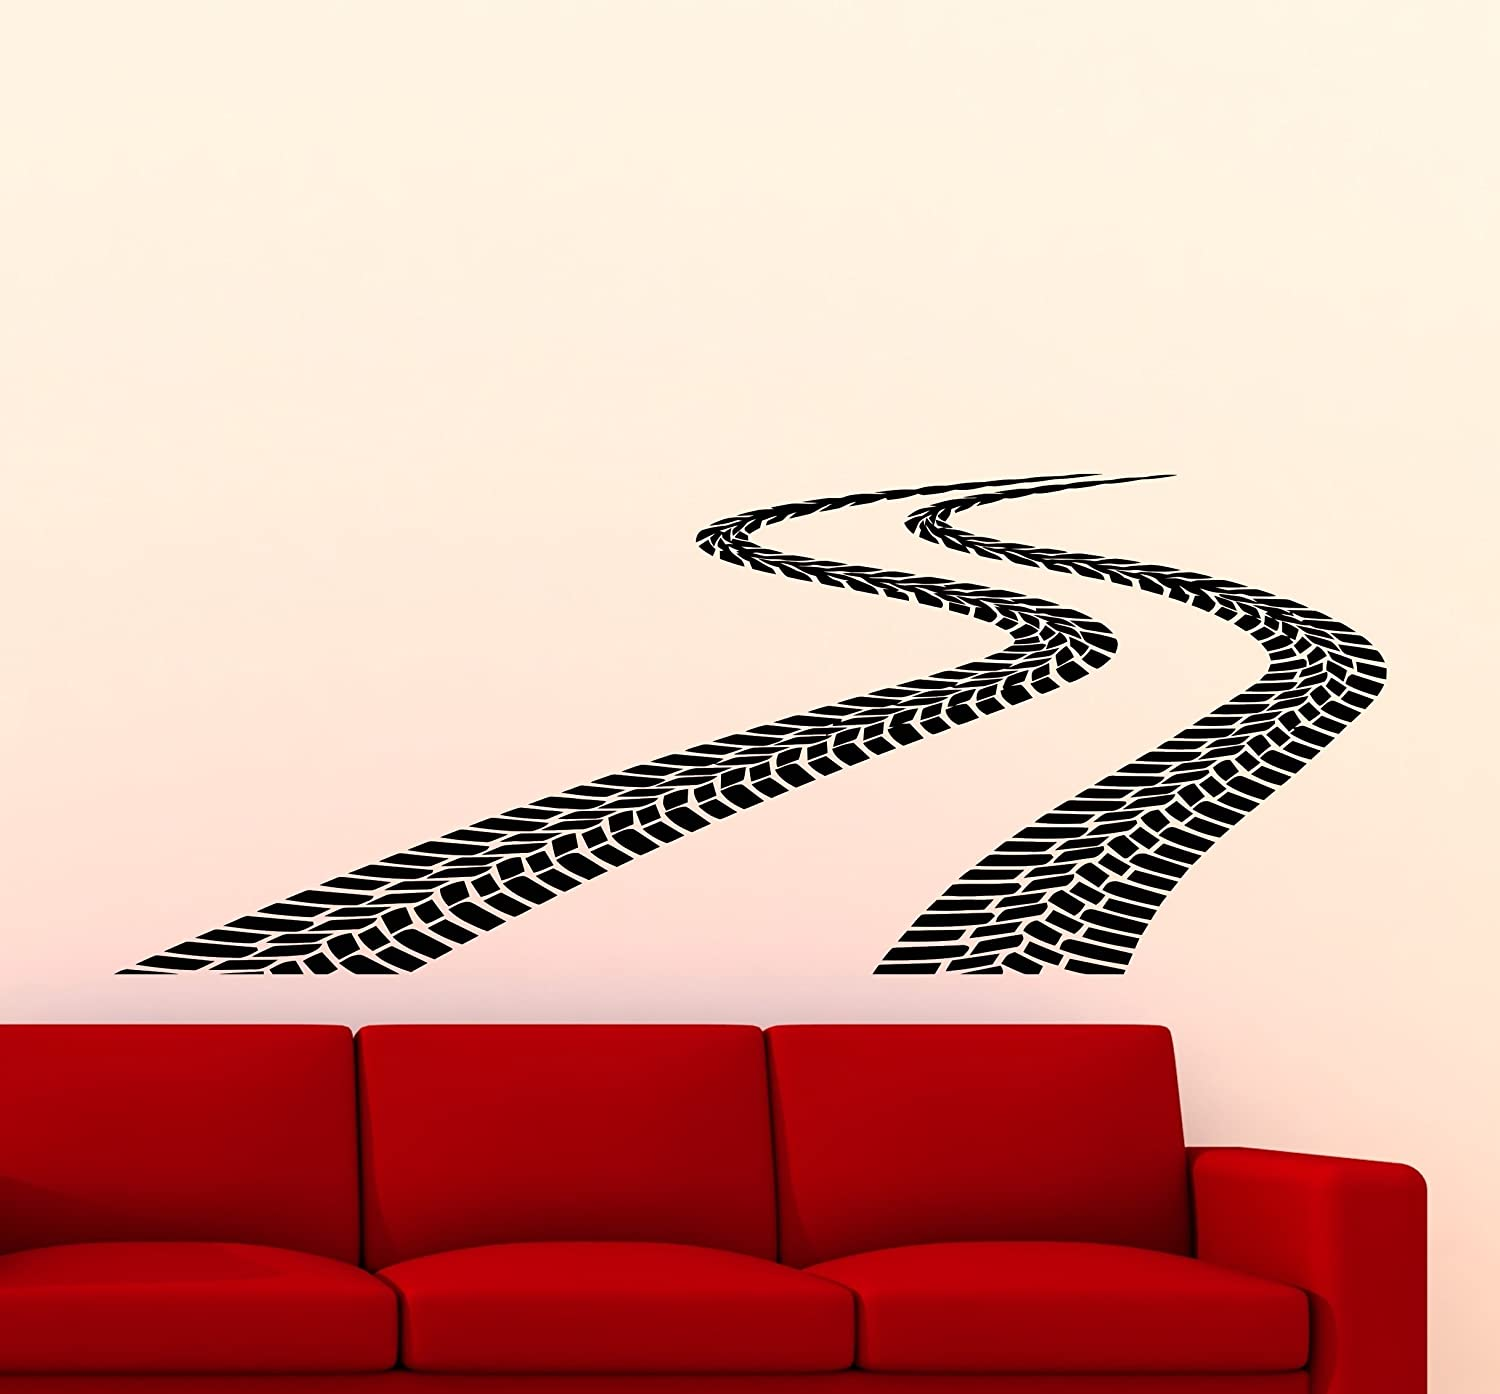 300xx Tire Tracks Wall Decal Car Road With Traces Of Tire Garage Vinyl Sticker Home Nursery Kids Boy Girl Room Interior Art Decoration Any Room Mural Waterproof High Quality Vinyl Sticker by Awesome Decals